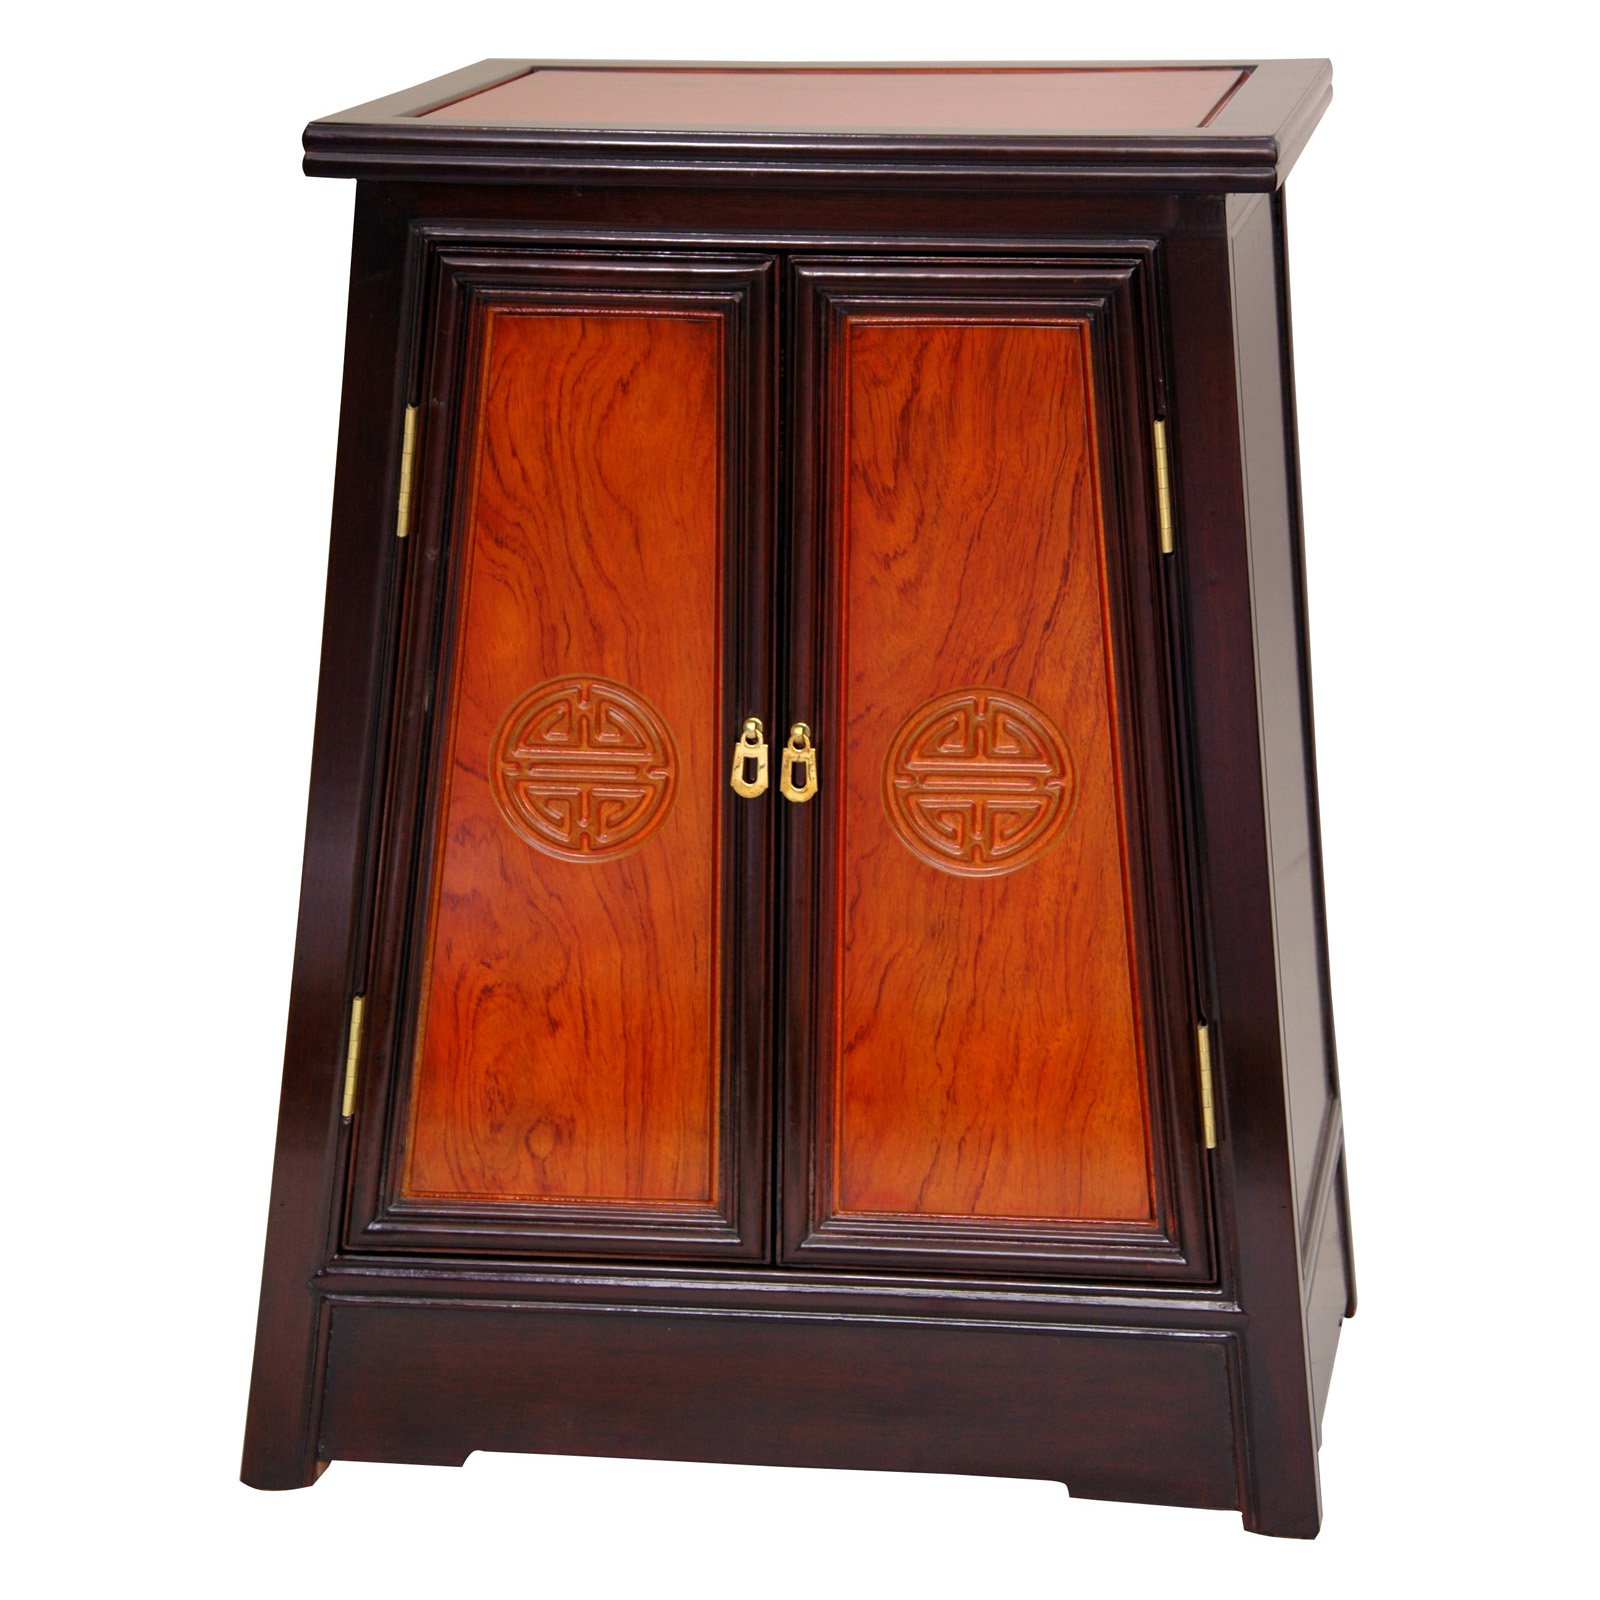 Rosewood Long Life Cabinet, Two-tone